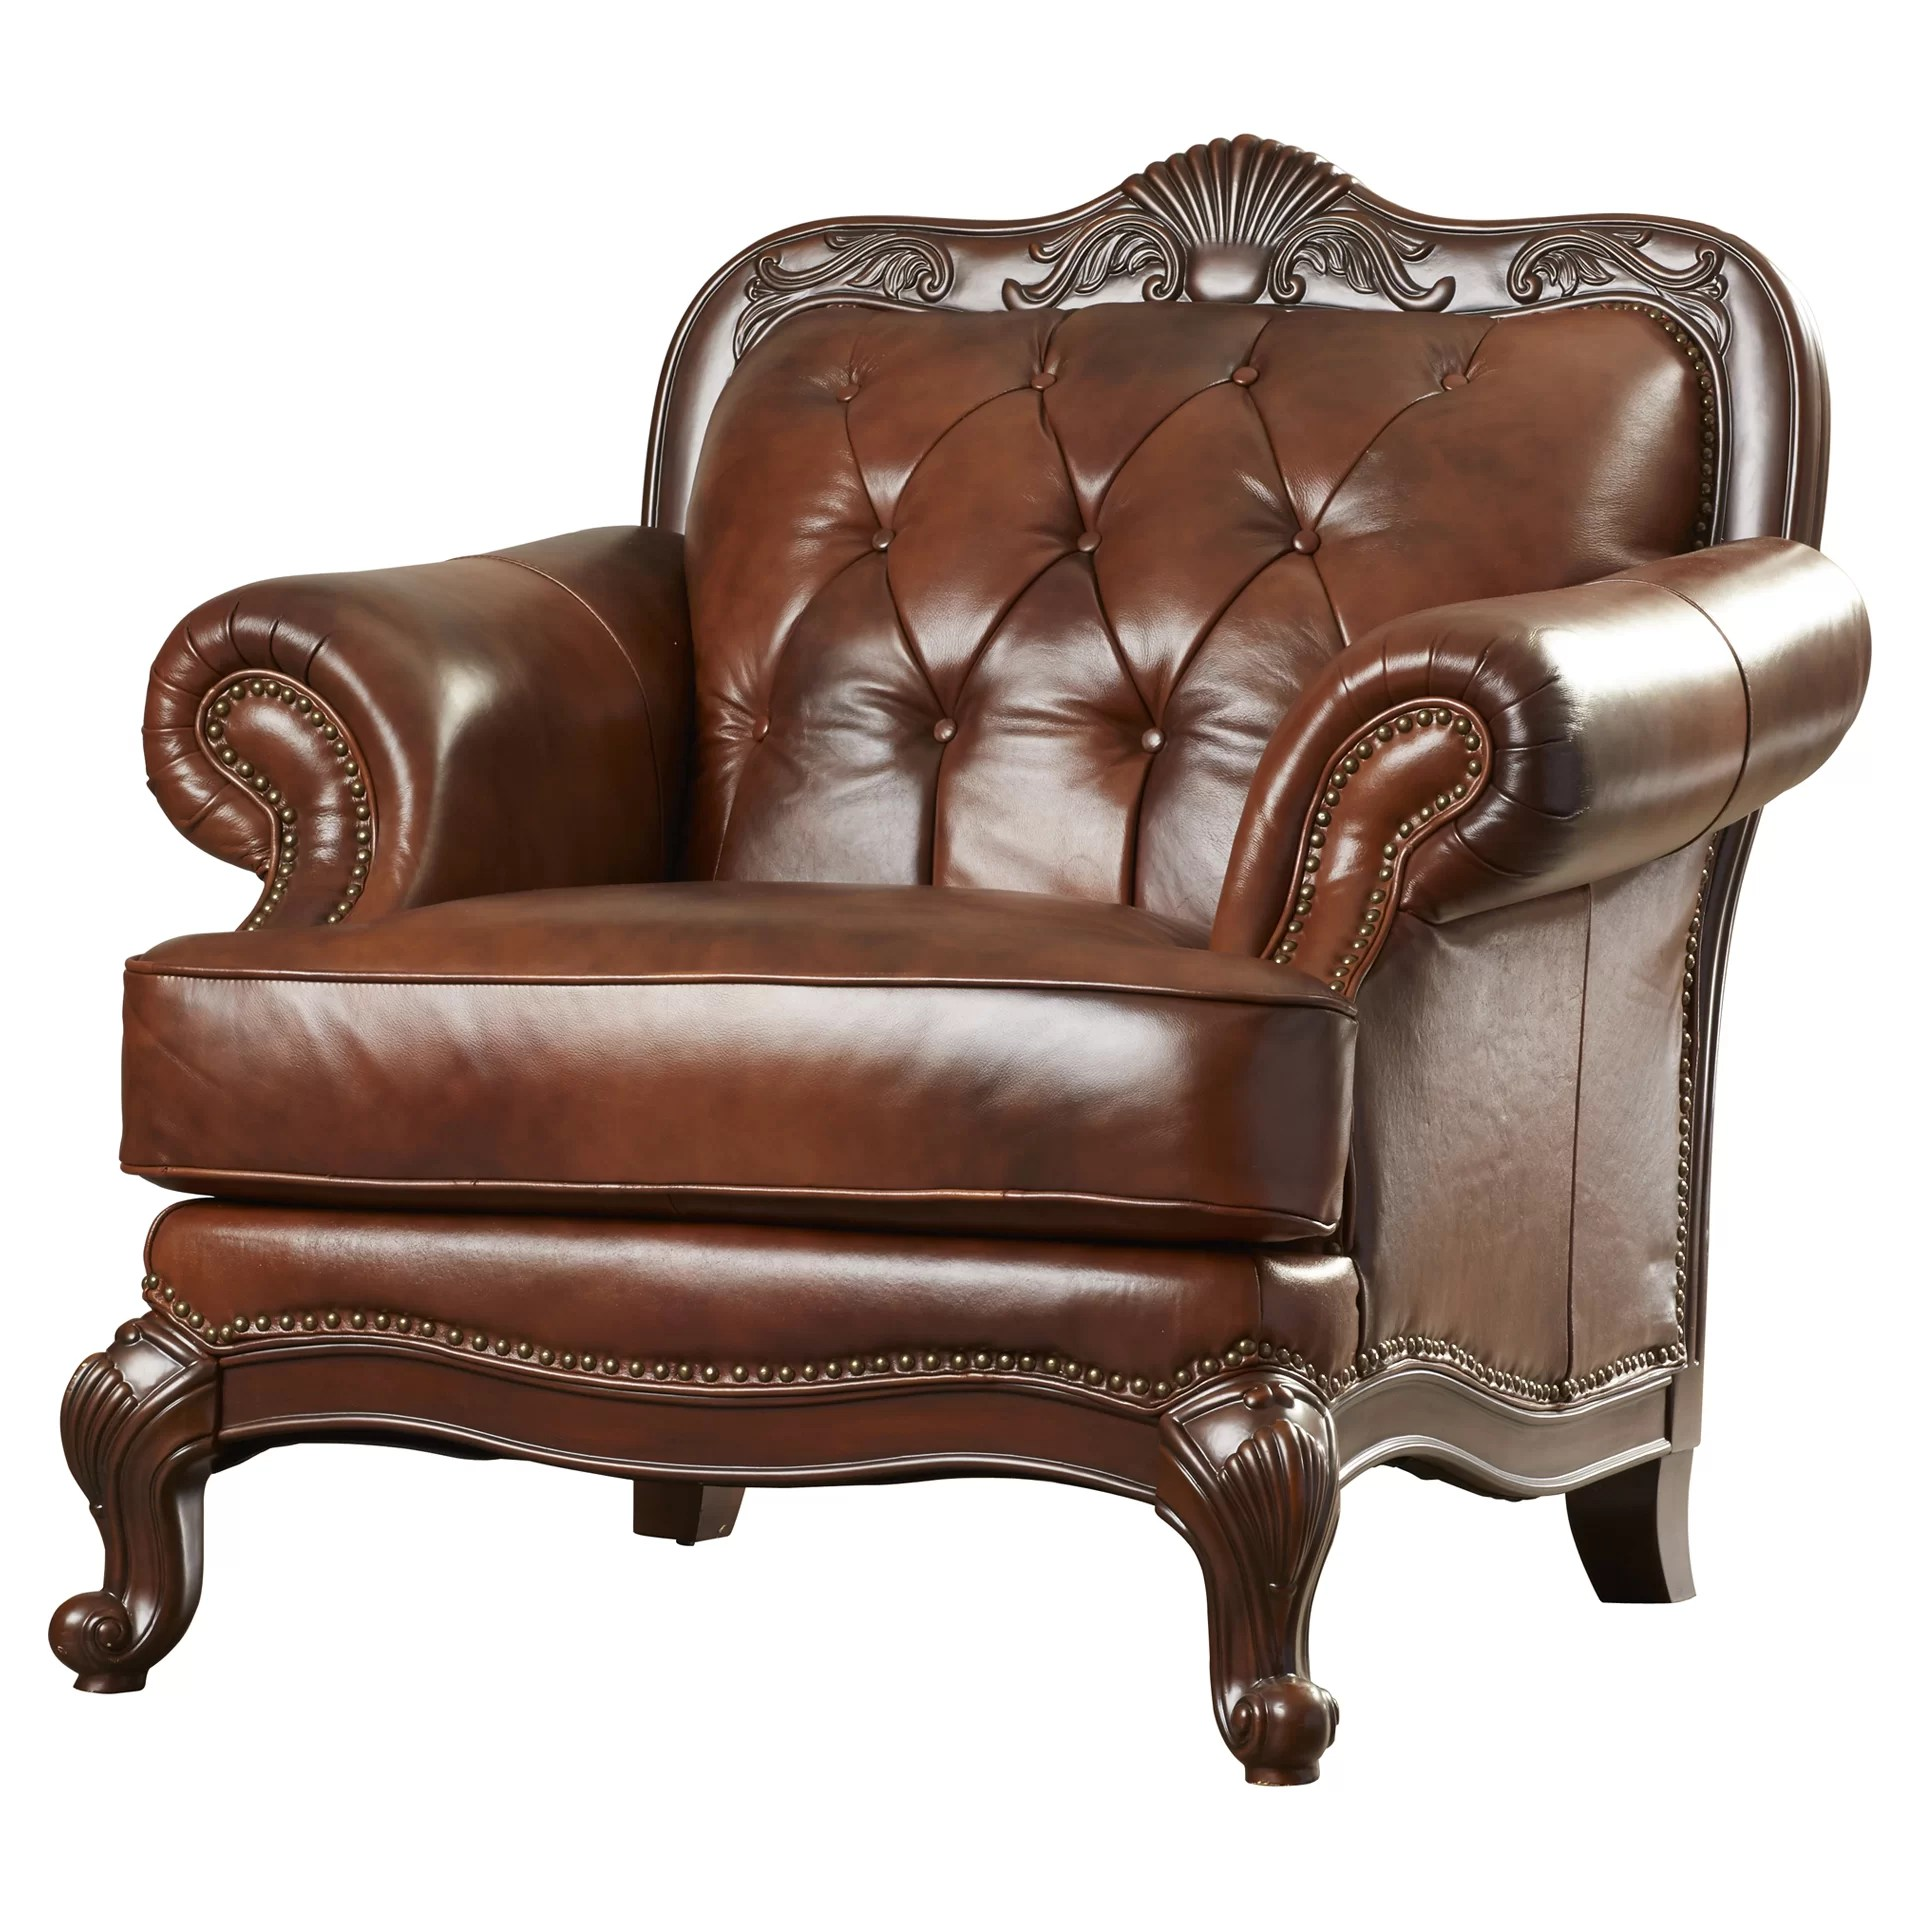 Leather Club Chair Darby Home Co Smith Leather Club Chair And Reviews Wayfair